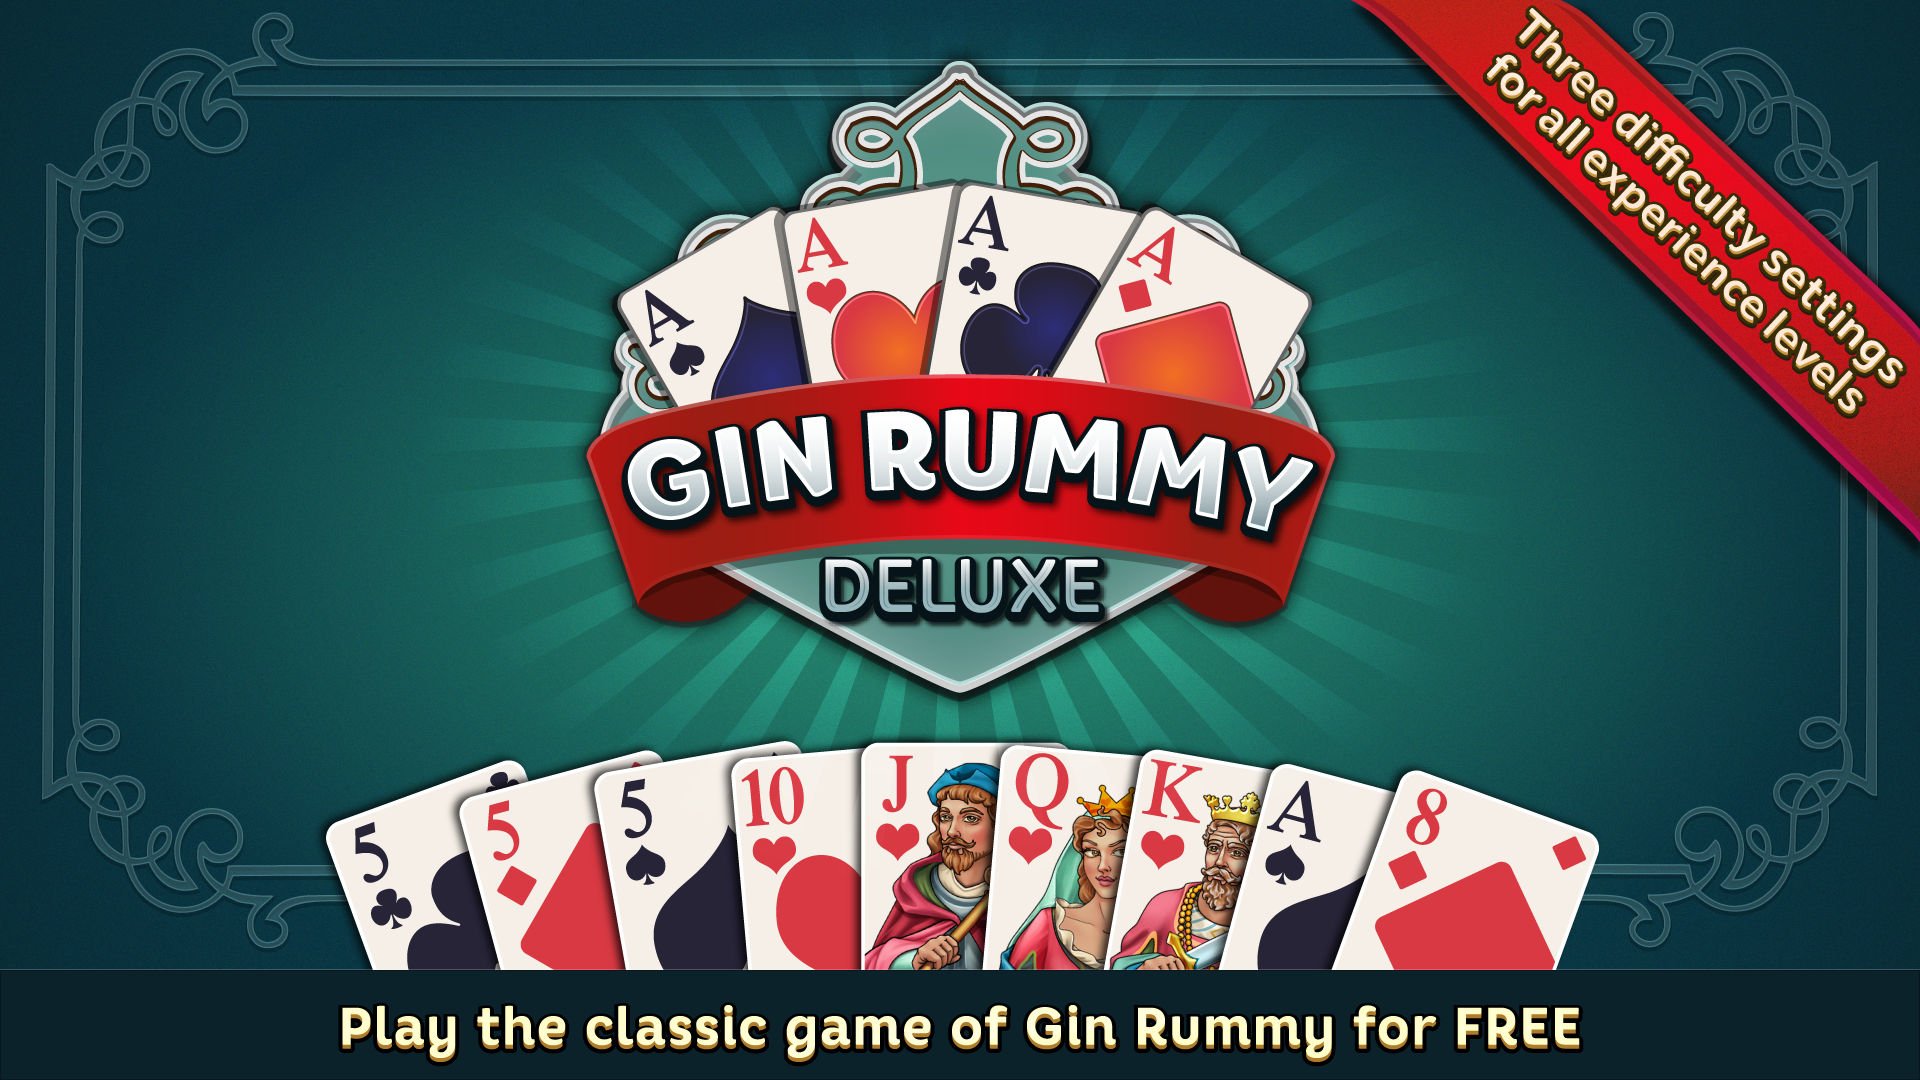 Amazon Com Gin Rummy Deluxe Appstore For Android,Chocolate Muffin Recipe